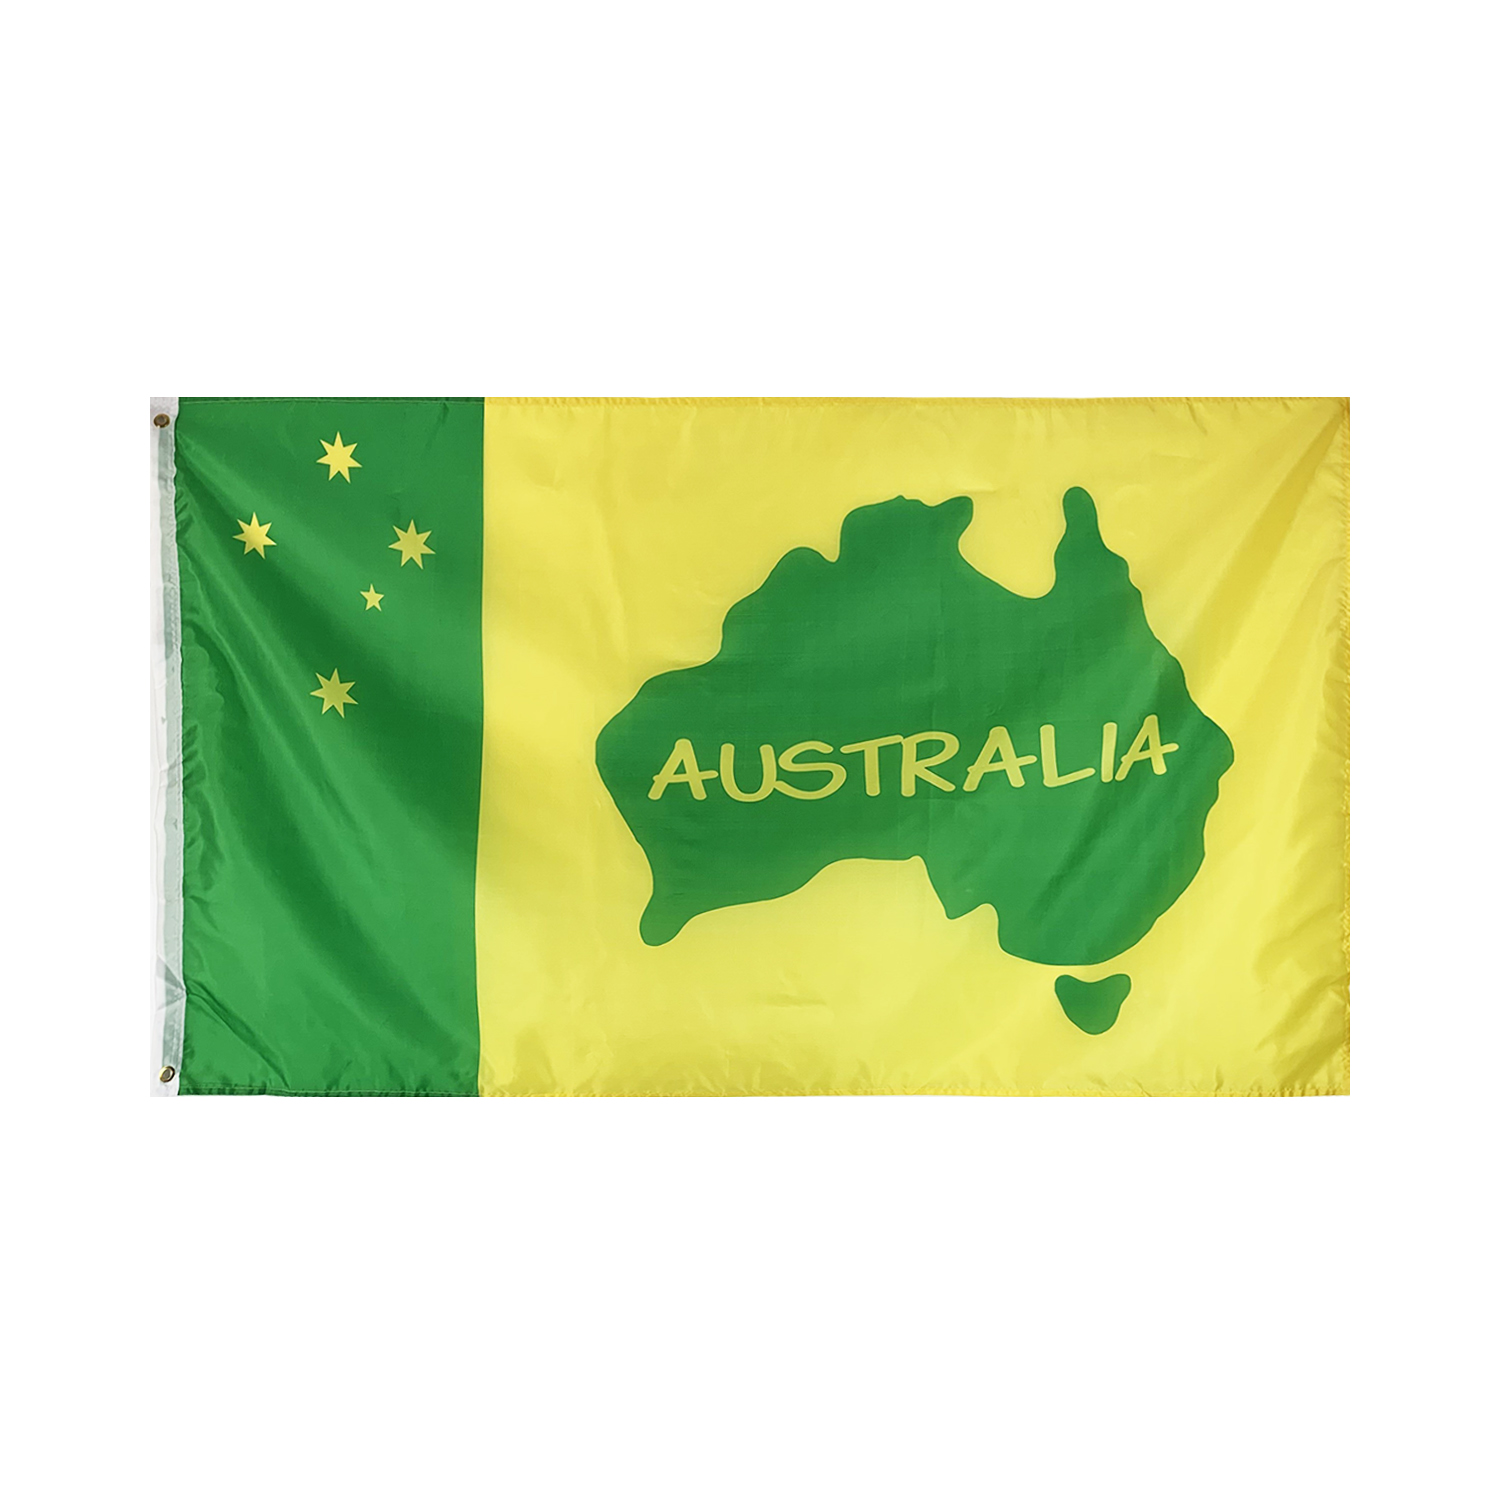 Flagnshow 90x150cm 3x5ft Australia Aussie Flags and Banners Australian National Flag for Rooms Decoration